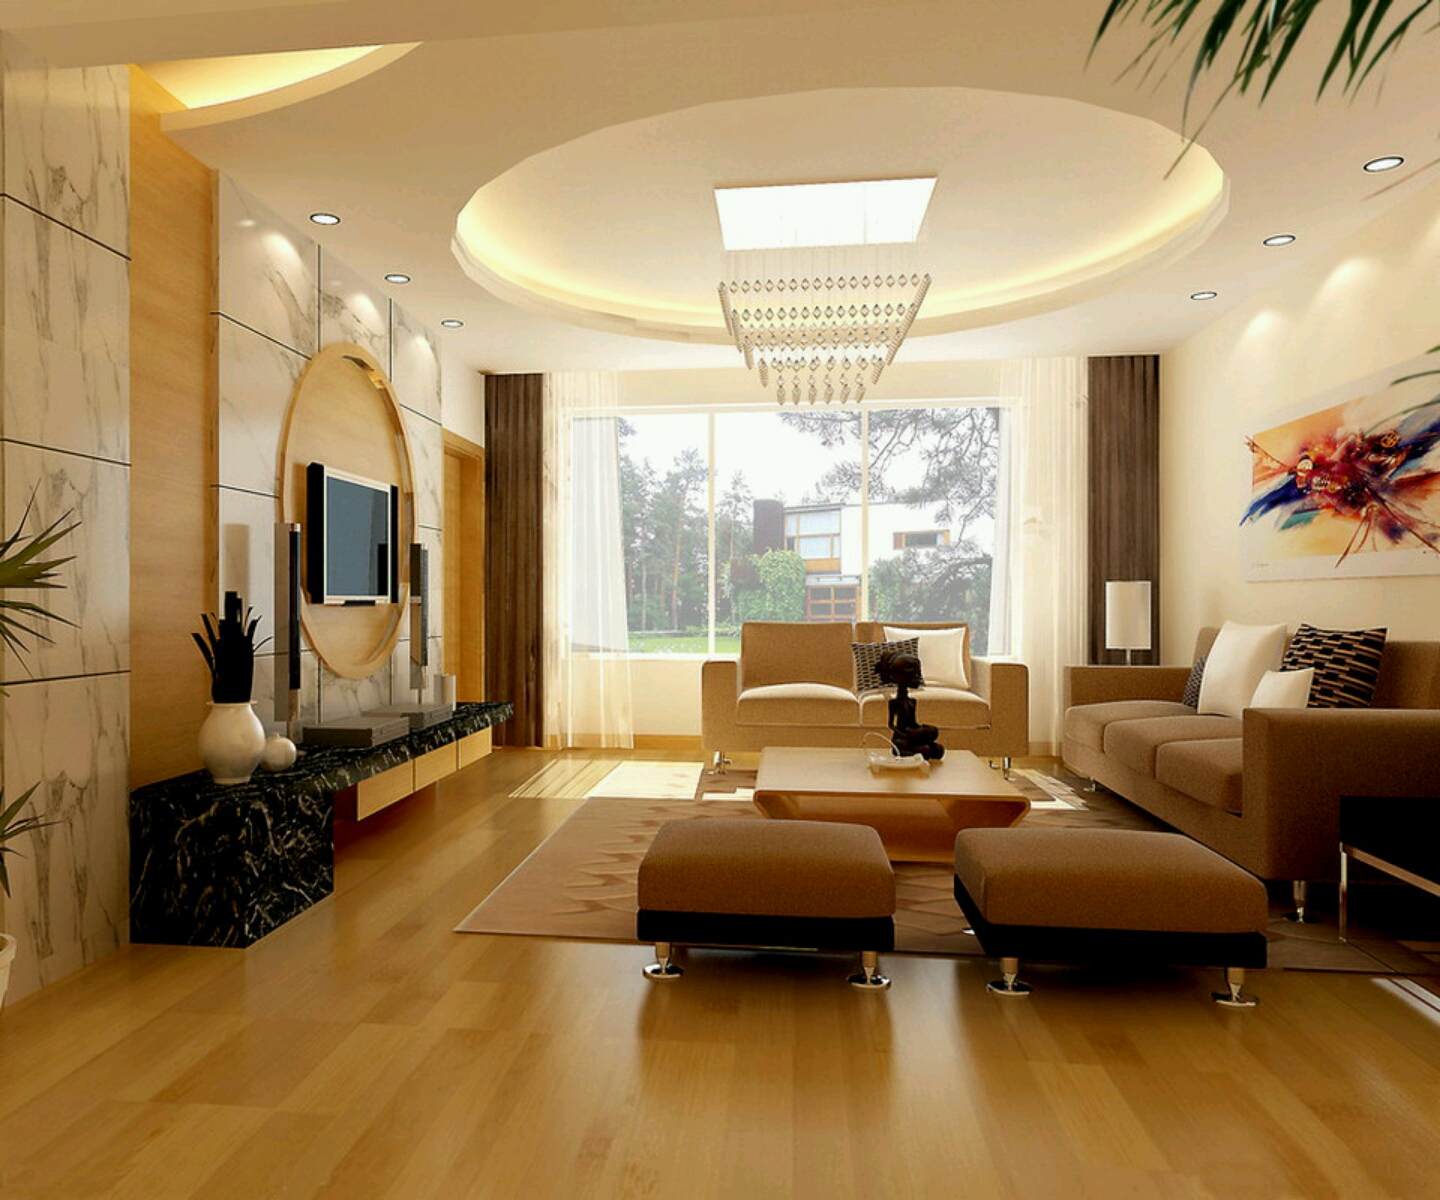 Modern interior decoration living rooms ceiling designs for Decoration for living room